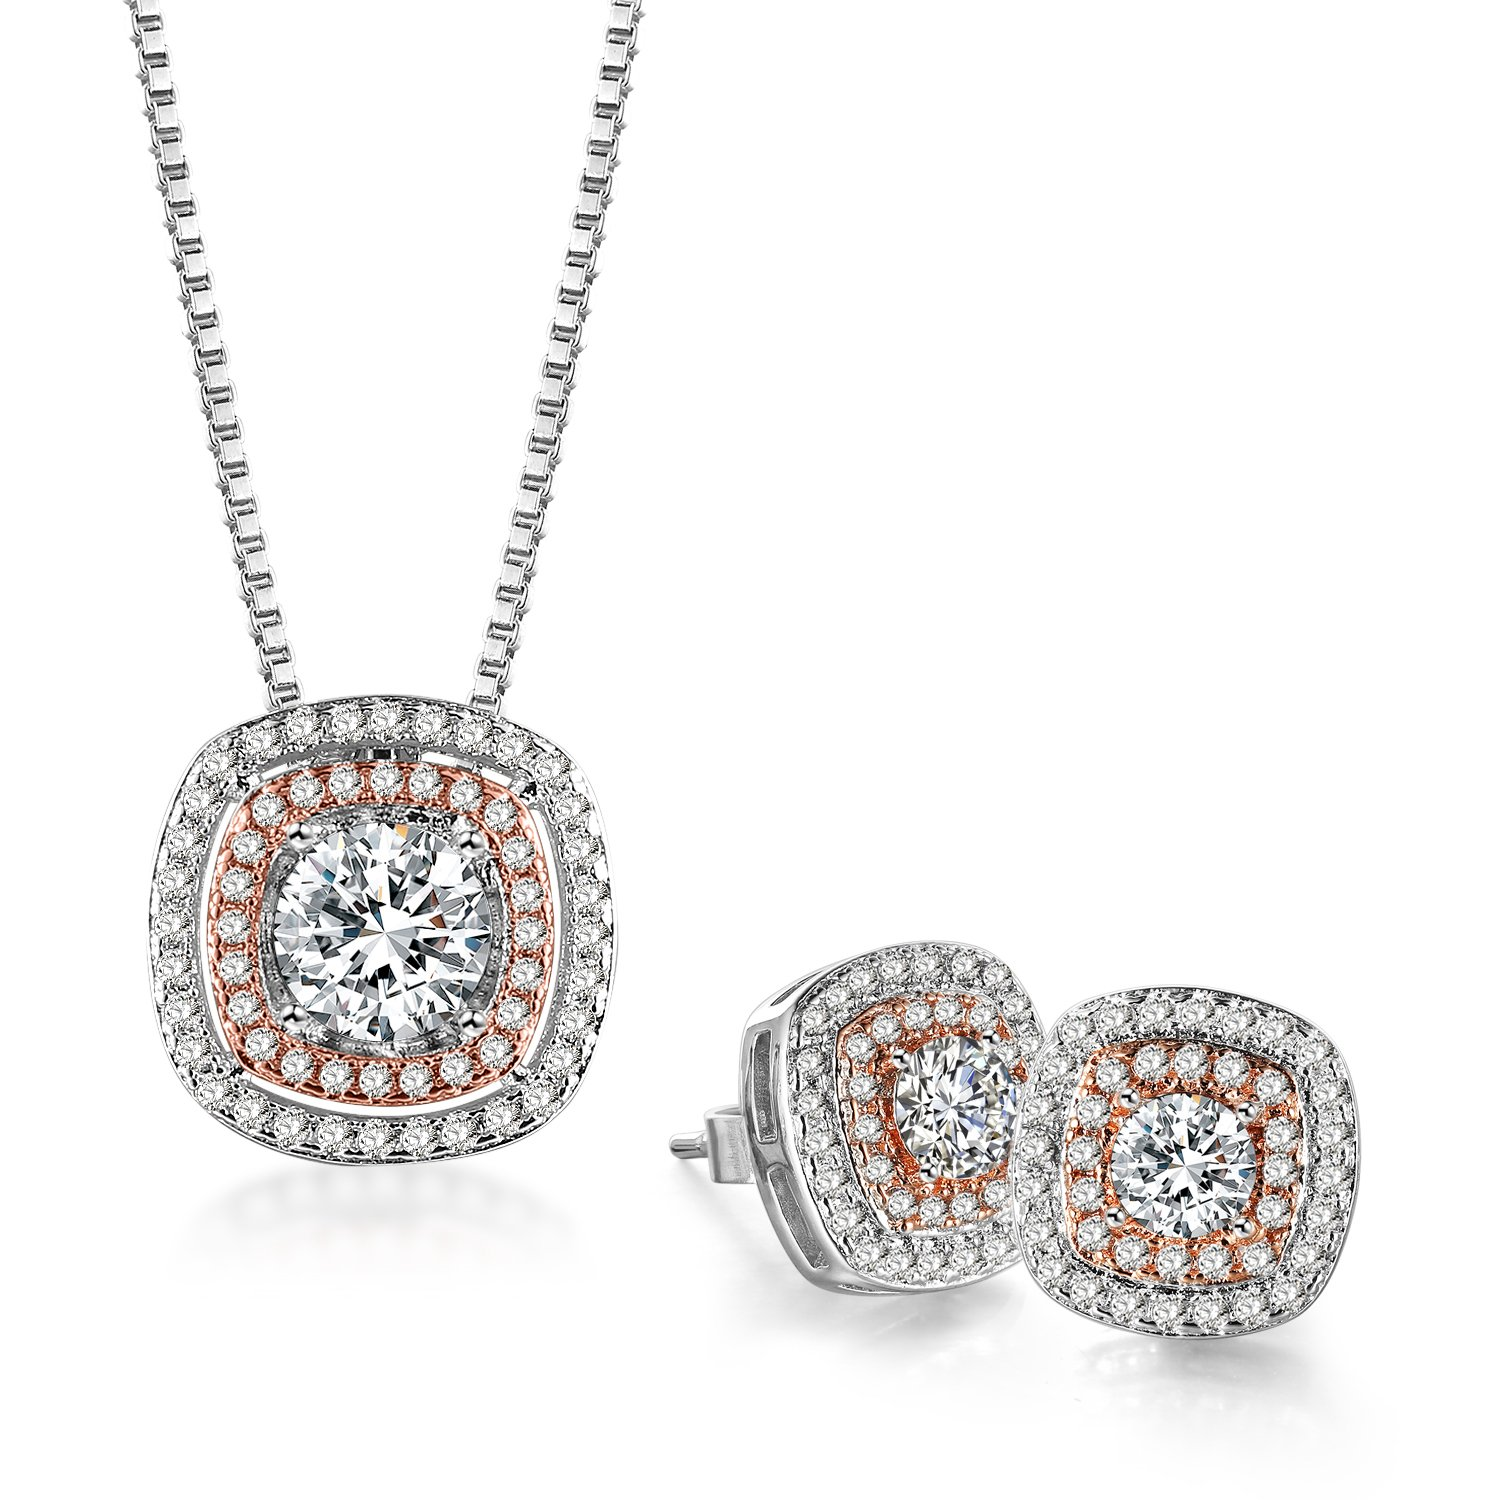 THEHORAE Jewelry Set Rose White Gold CZ Pendant Square Necklace Stud Earrings Sets for Birthday Gift,Crystals from Swarovski